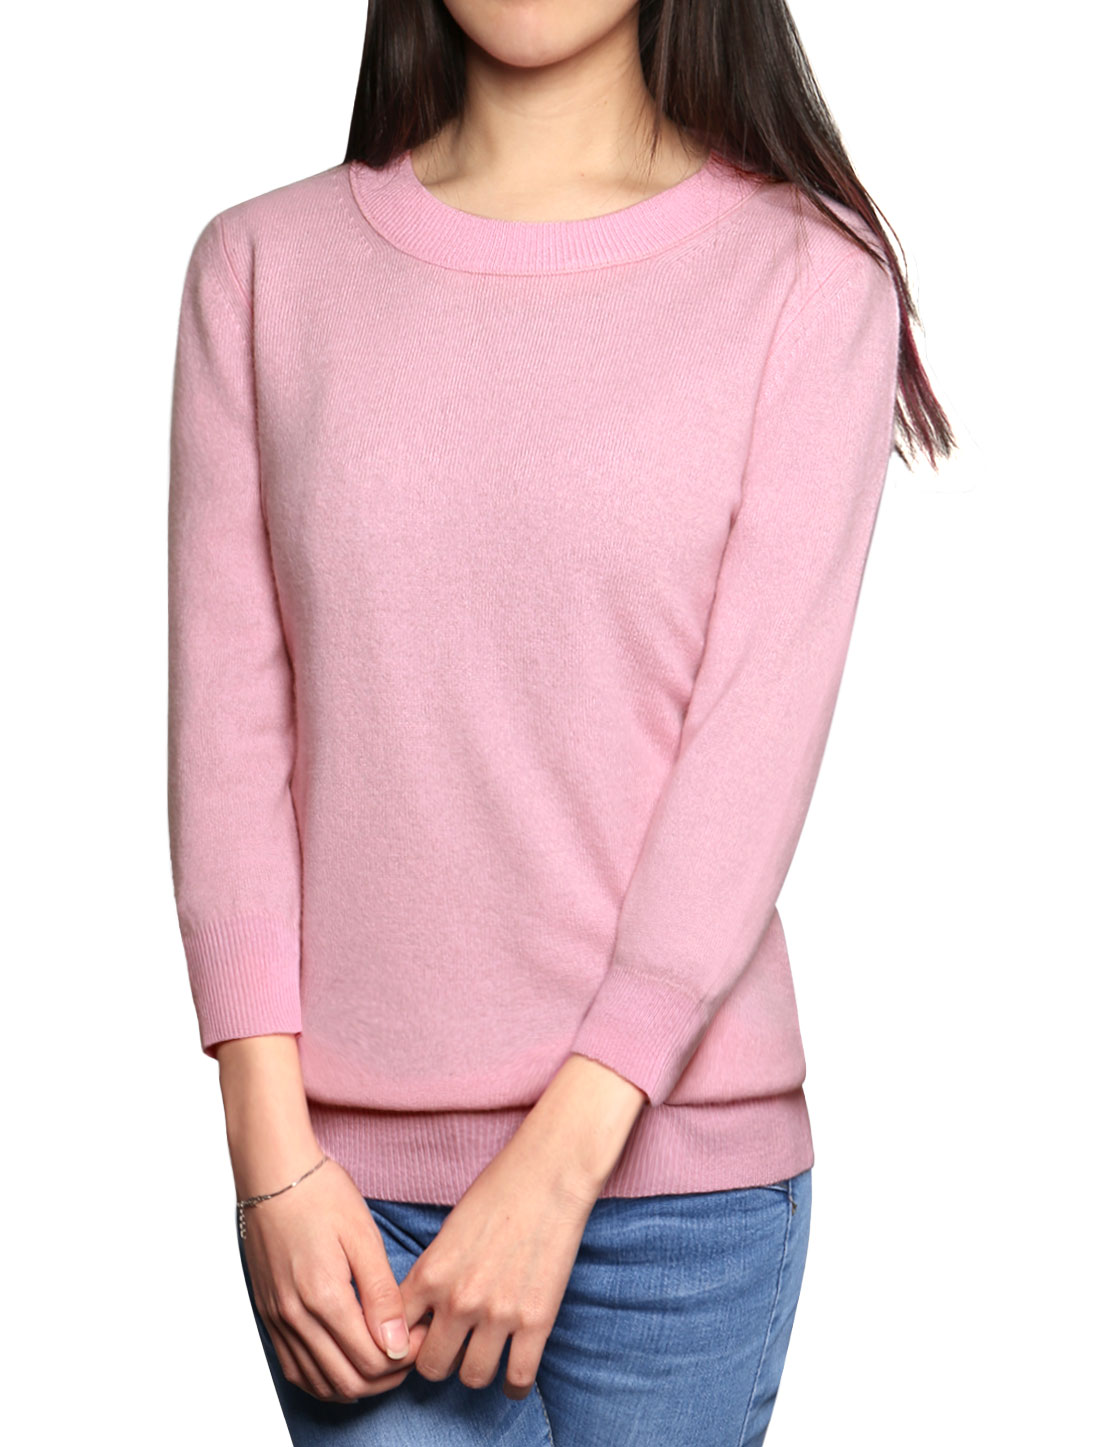 Women 3/4 Sleeves Crew Neck Ribbed Trim Sweater Pink M